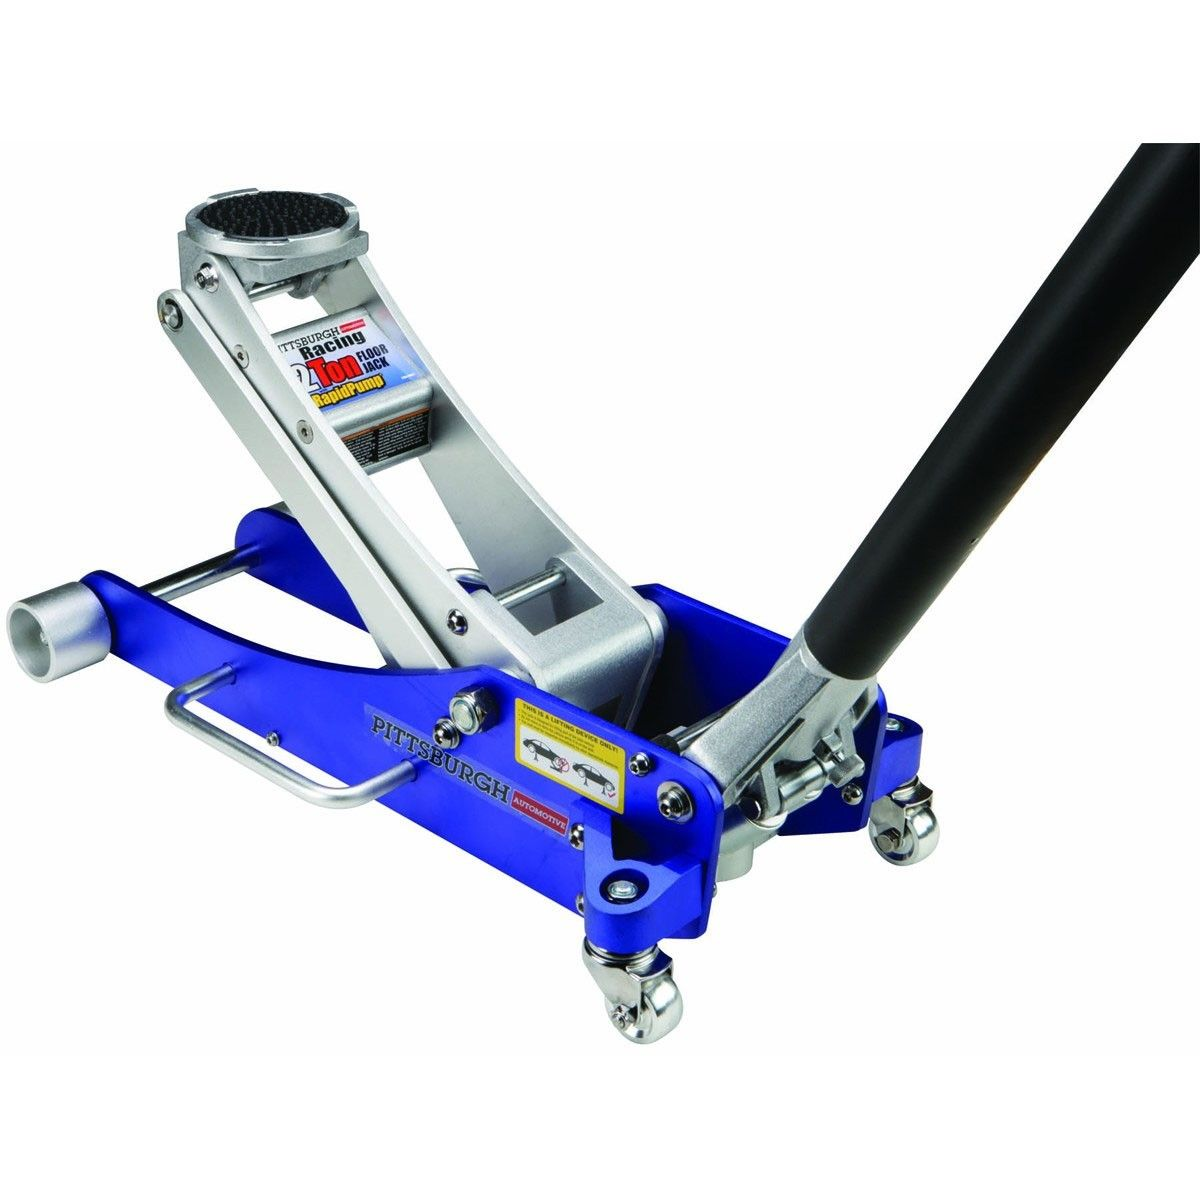 2 Ton Aluminum Racing Floor Jack With Rapid Pump Floor Jacks Floor Jack Lifted Cars